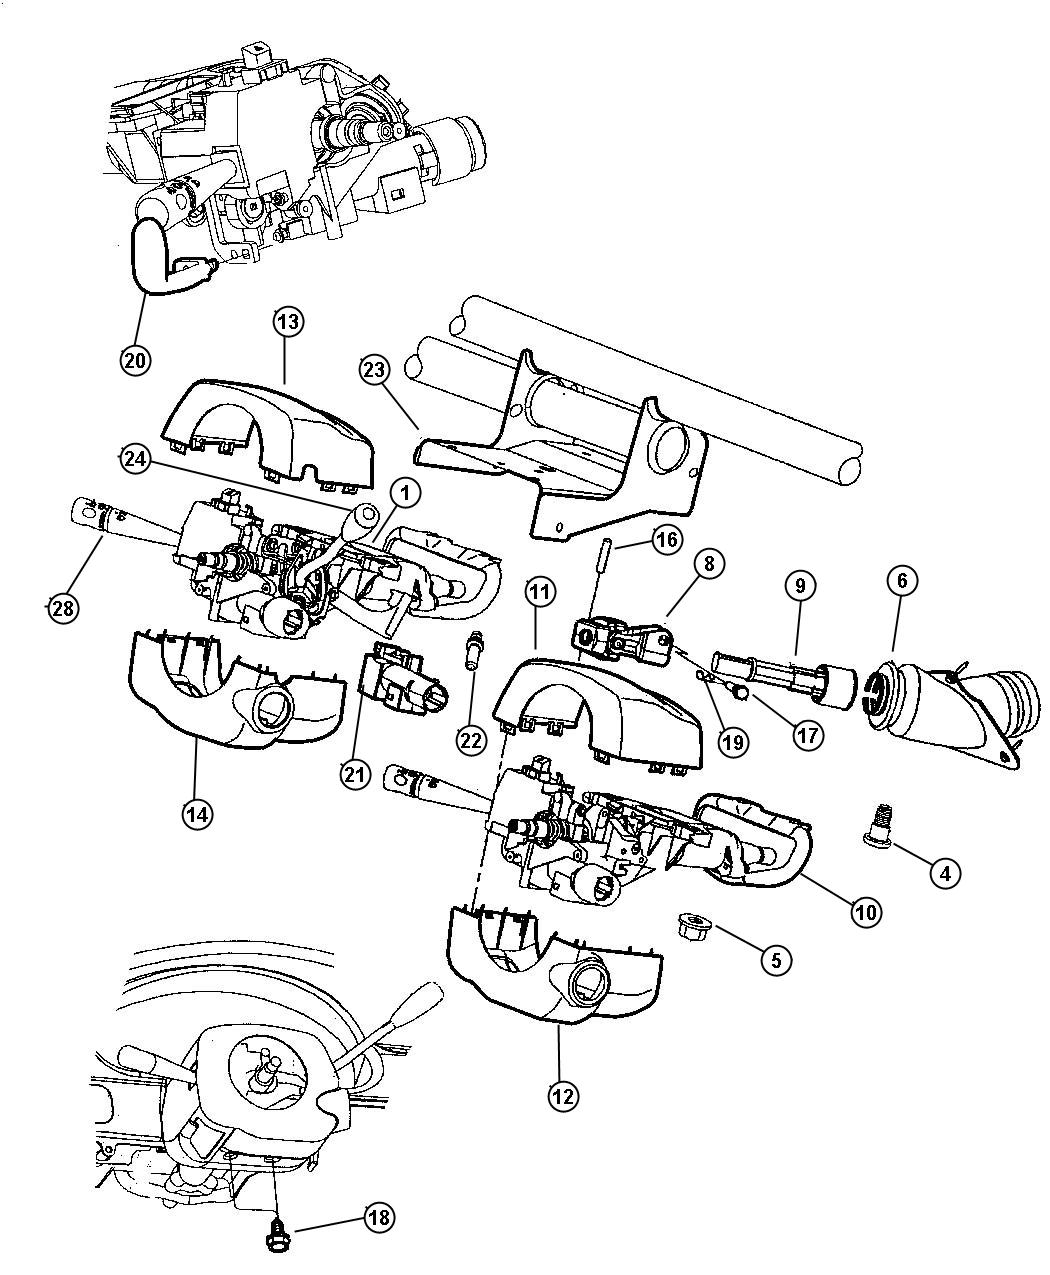 Chrysler Lhs Shroud. Steering column. Lower. Column shift